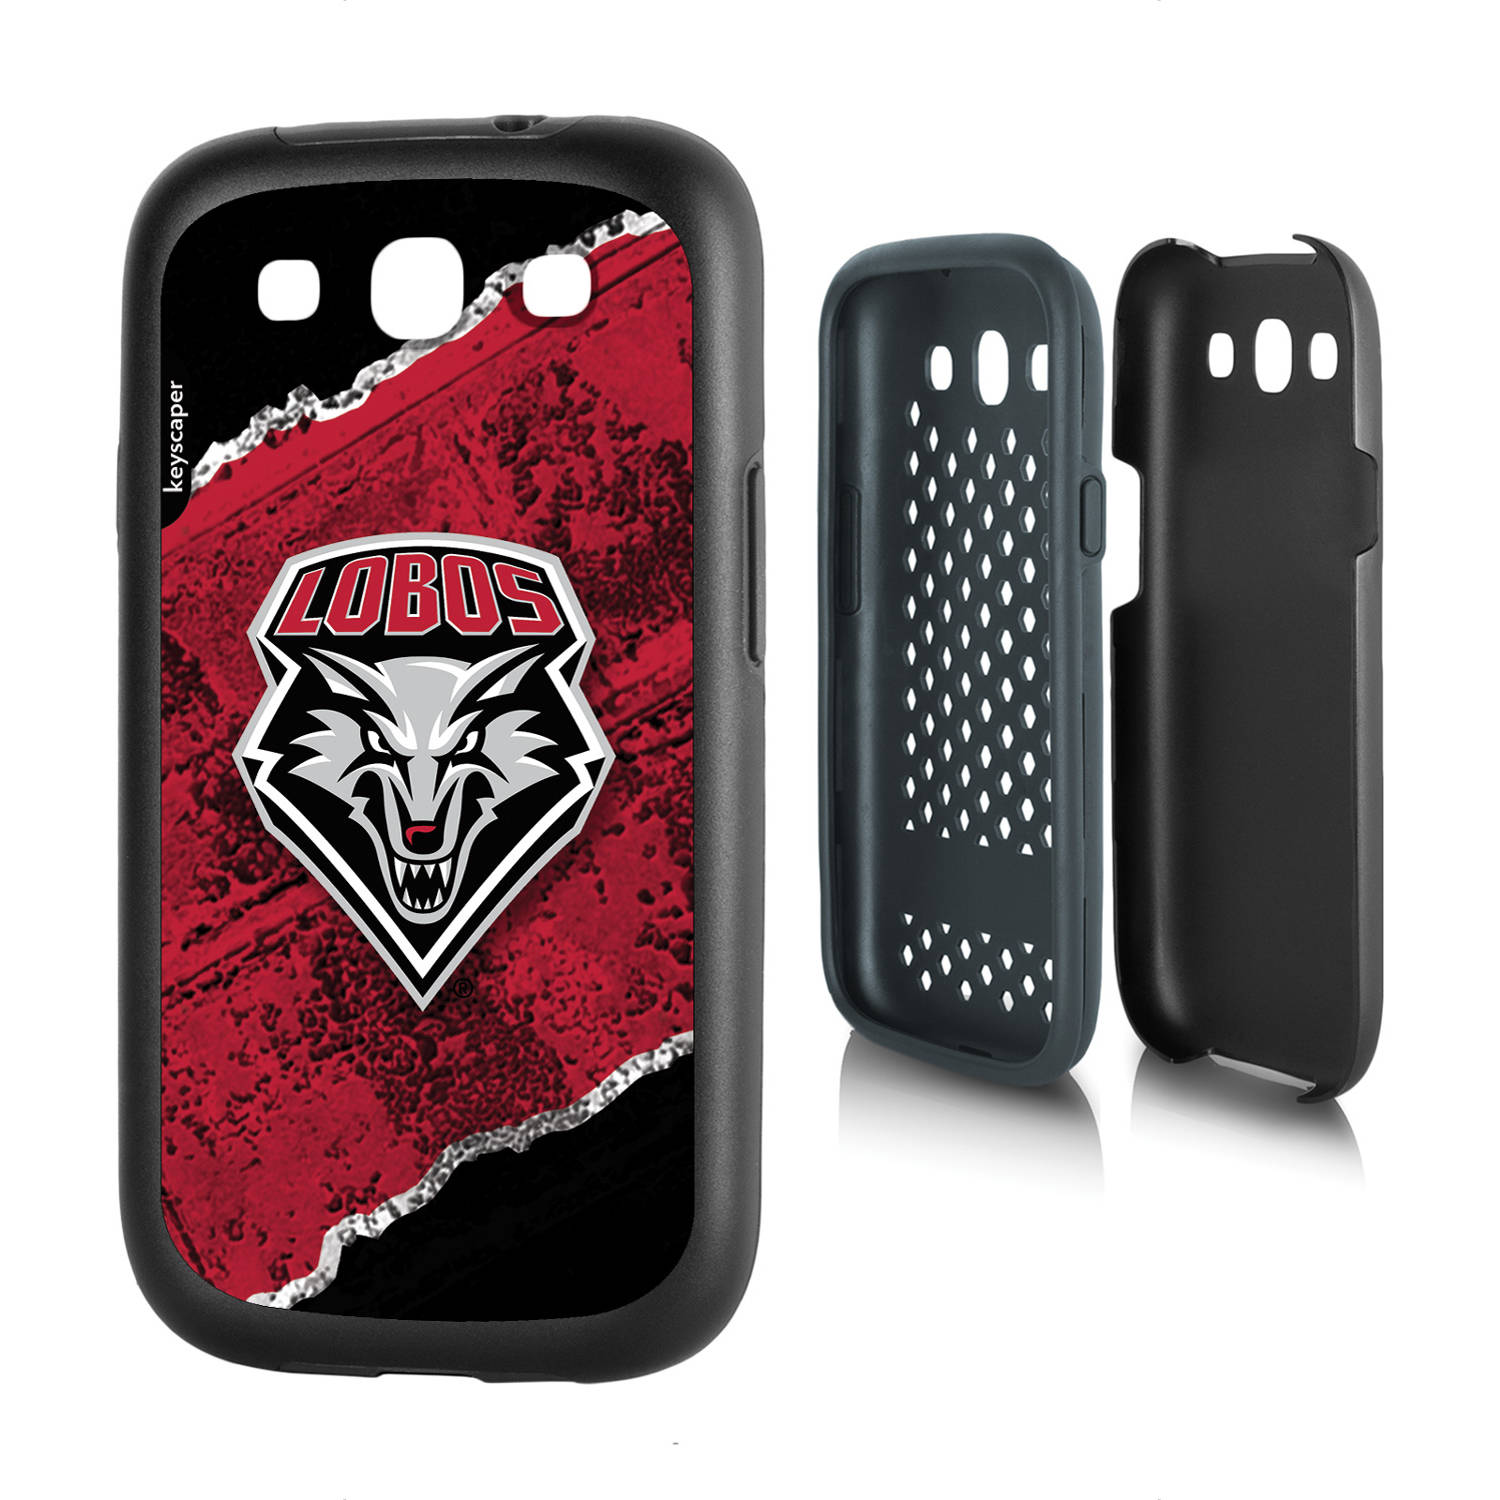 New Mexico Lobos Galaxy S3 Rugged Case